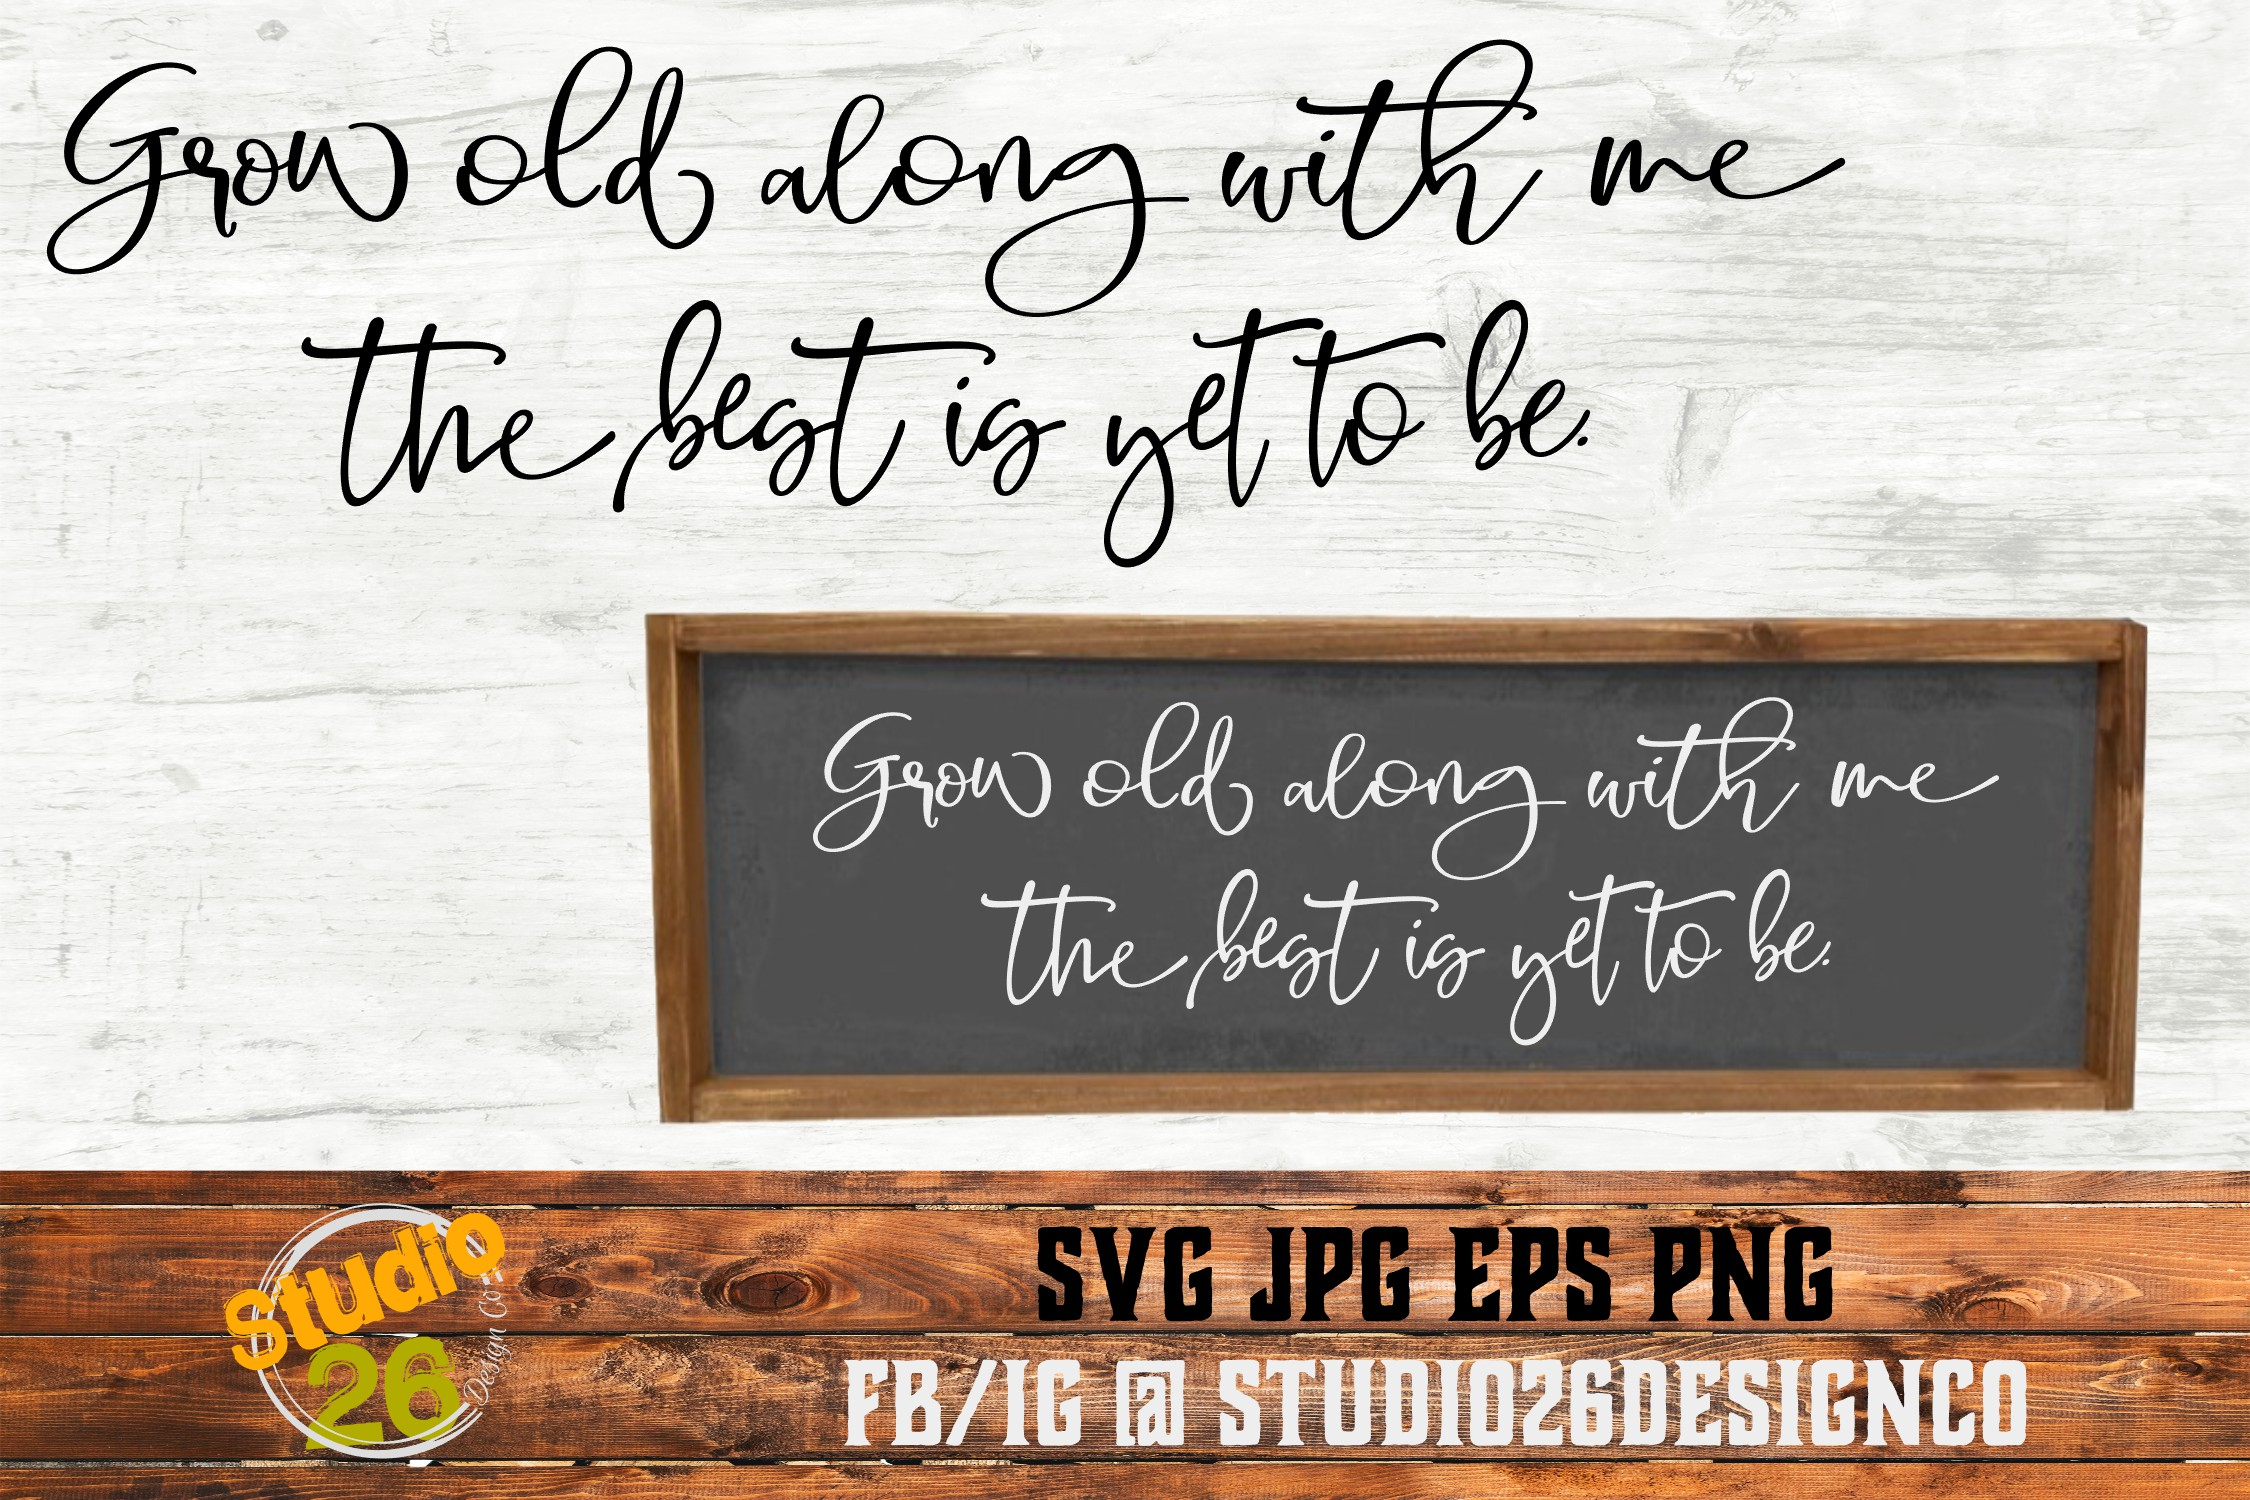 Grow old along with me the best is yet to be - SVG PNG EPS example image 1